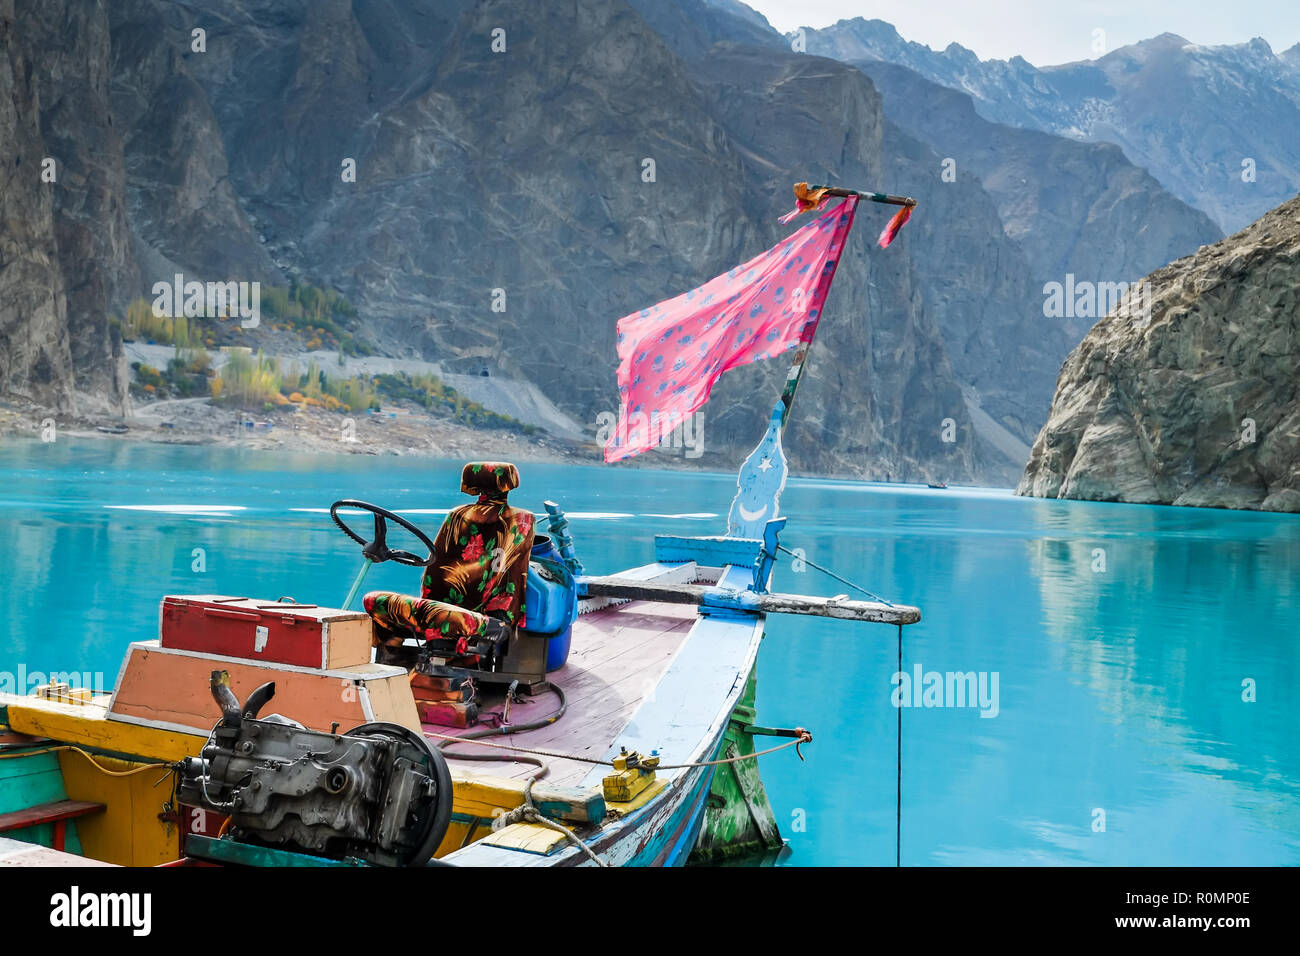 A colorful boat at Attabad lake. Hunza valley, Gilgit Baltistan, Pakistan. - Stock Image